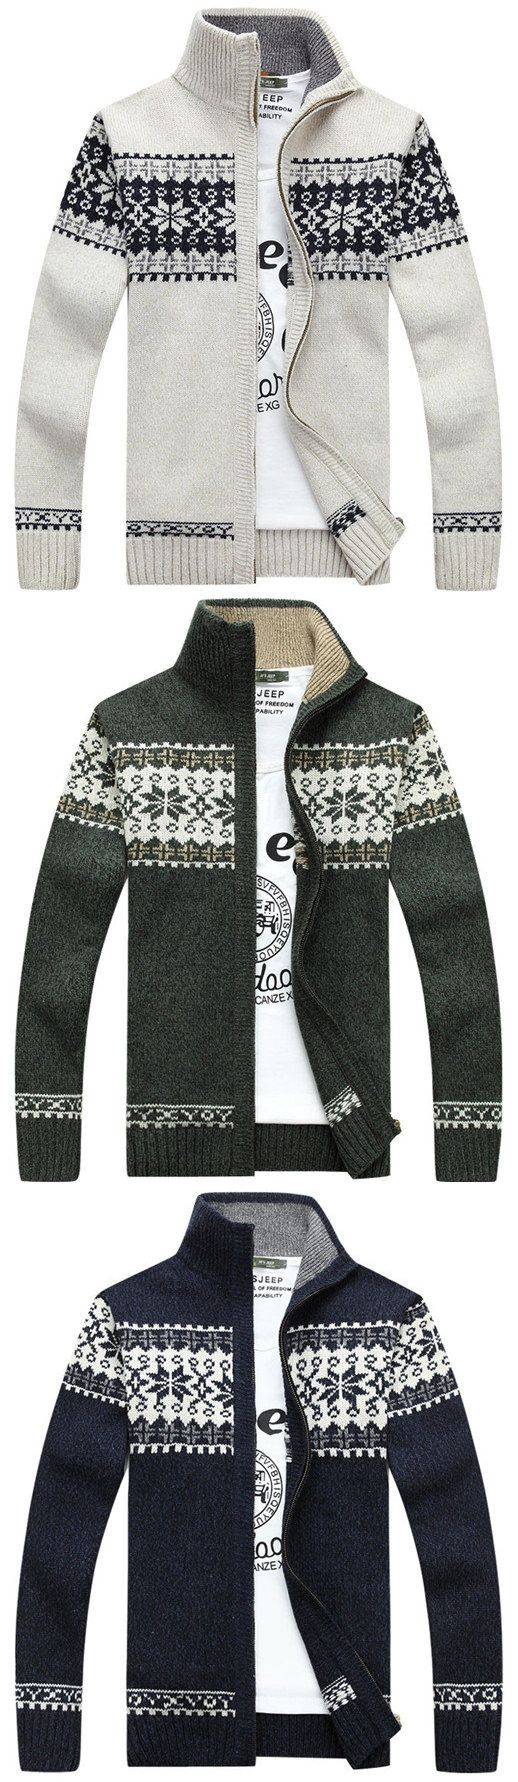 9f31b26e49908 All Kinds of sweaters for men. Don t miss the big deals on Newchic.